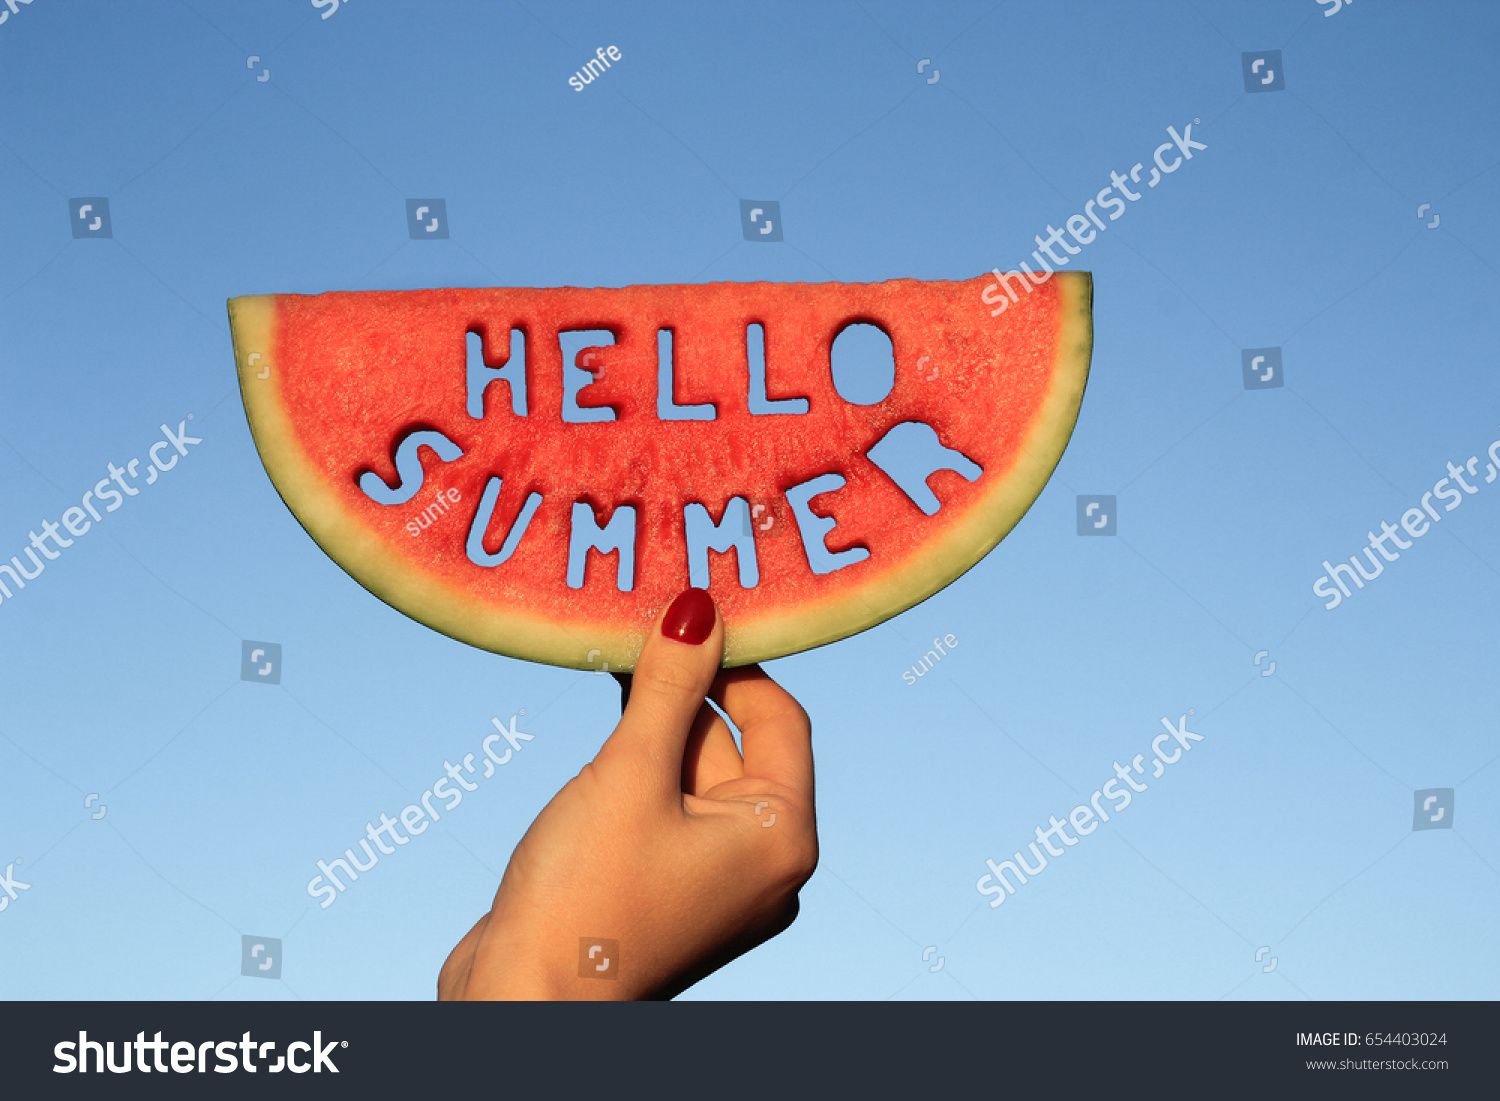 Watermelon Slice With Text Hello Summer, Woman Hands Holding It Against  Blue Sky. Summertime